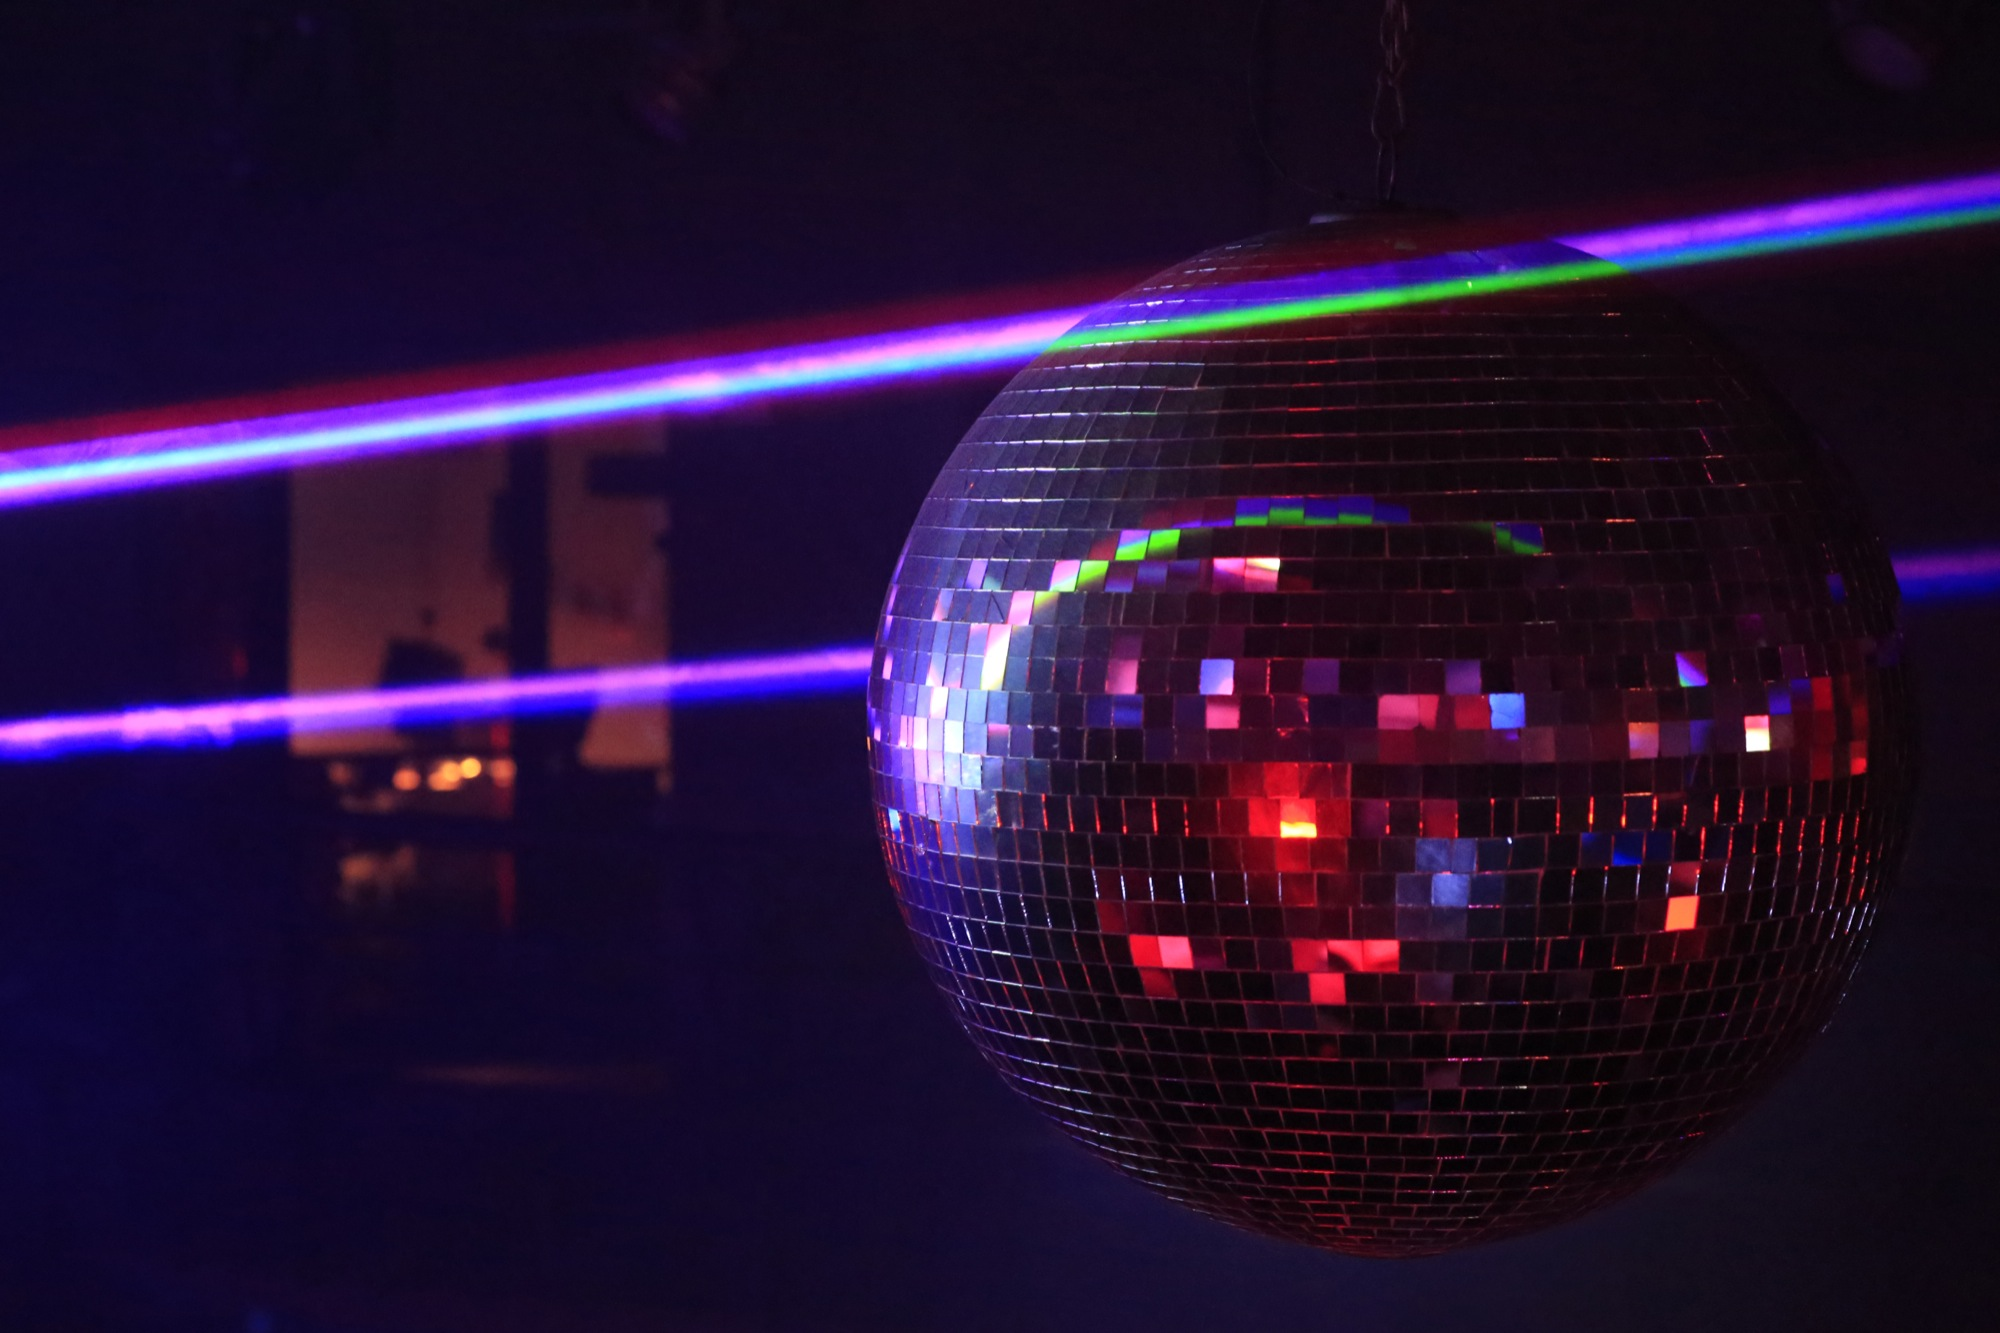 Discobal Met Licht : Why is buenos aires waging a war on electronic music? frederick